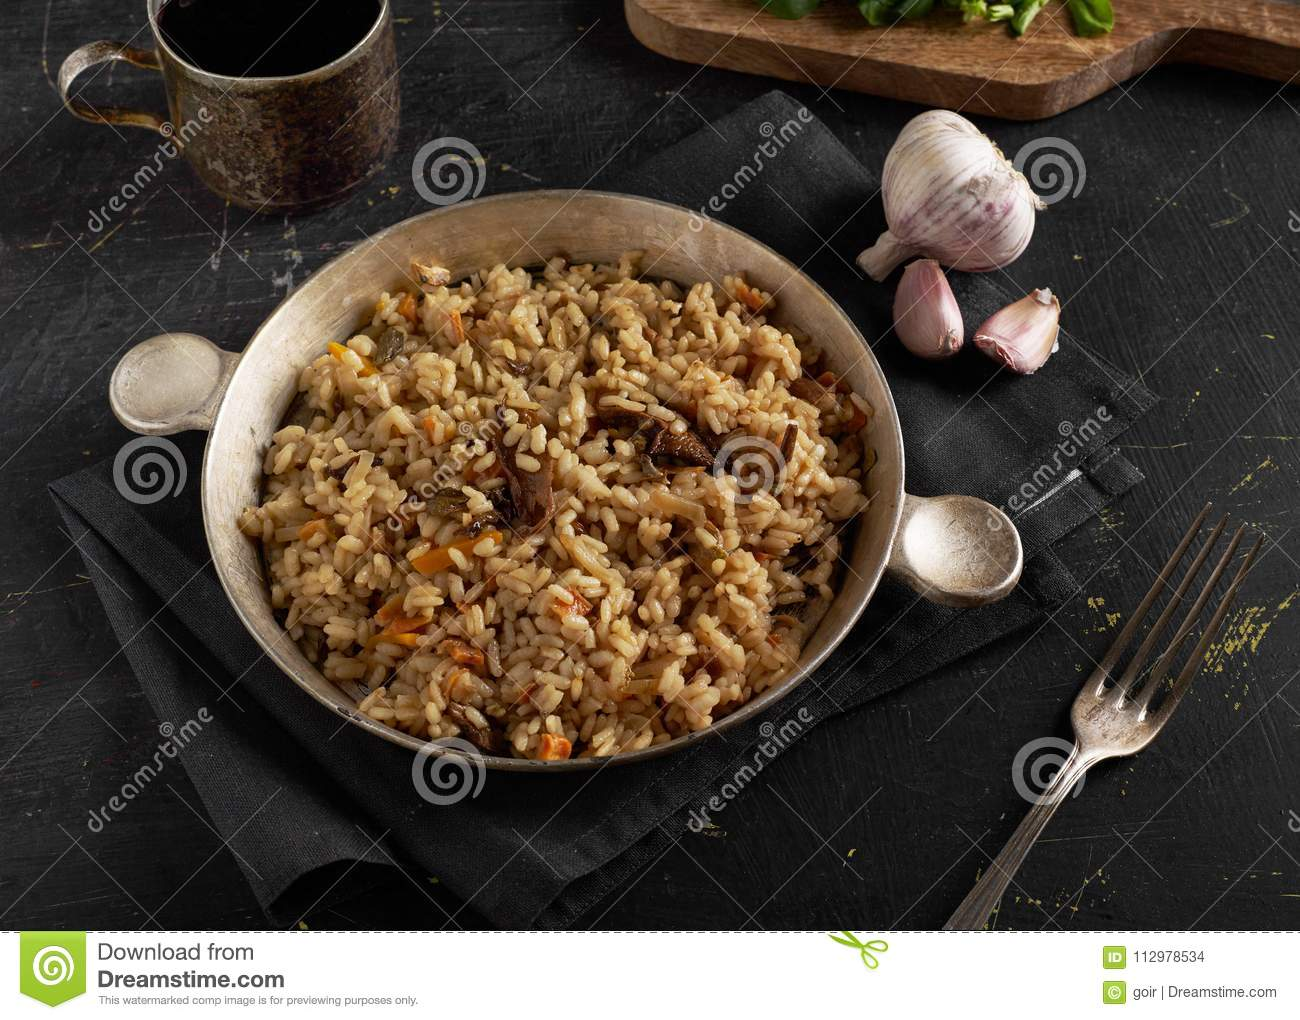 Homemade risotto in a pan